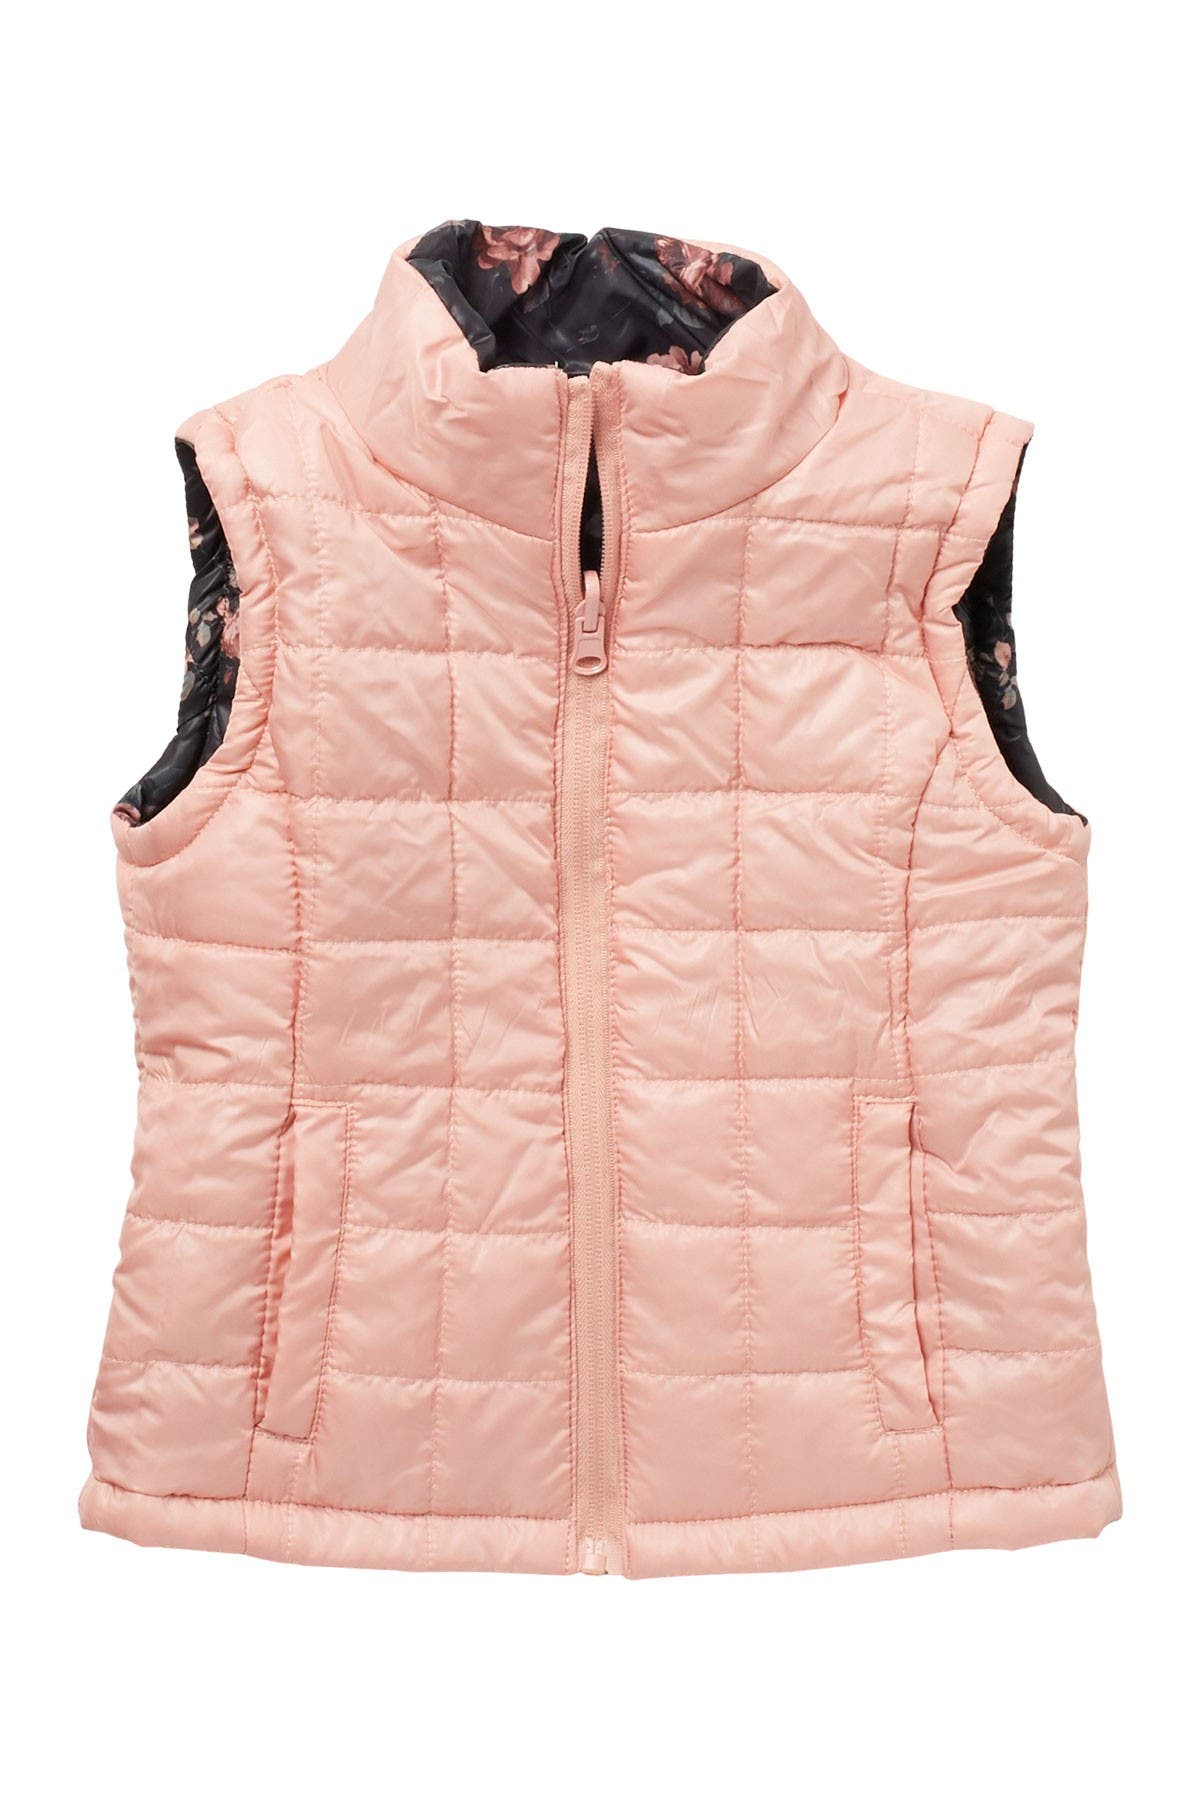 Image of Urban Republic Reversible Quilted Vest